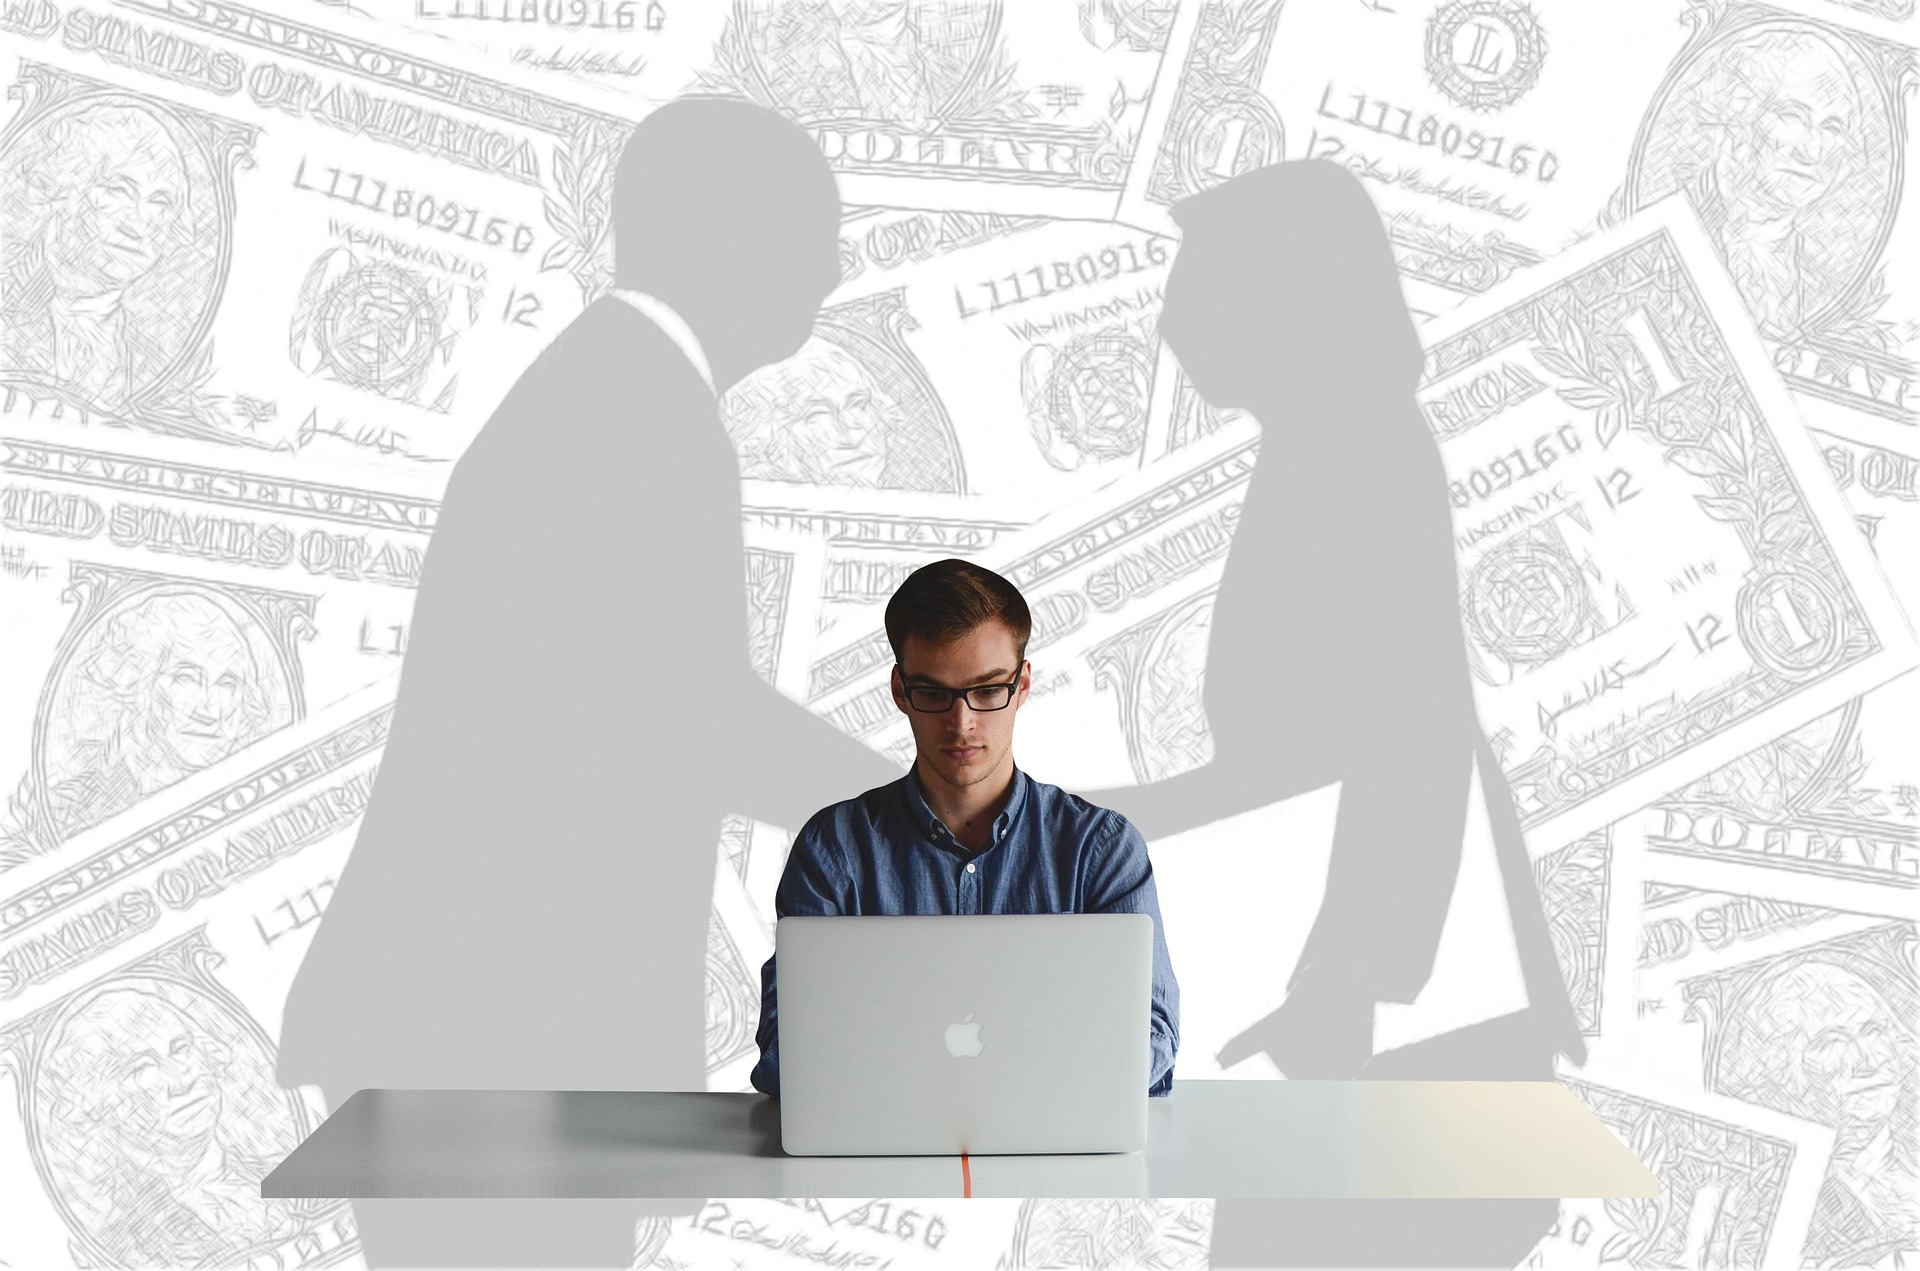 Real Ways to Make Money From Home That Are Legitimate